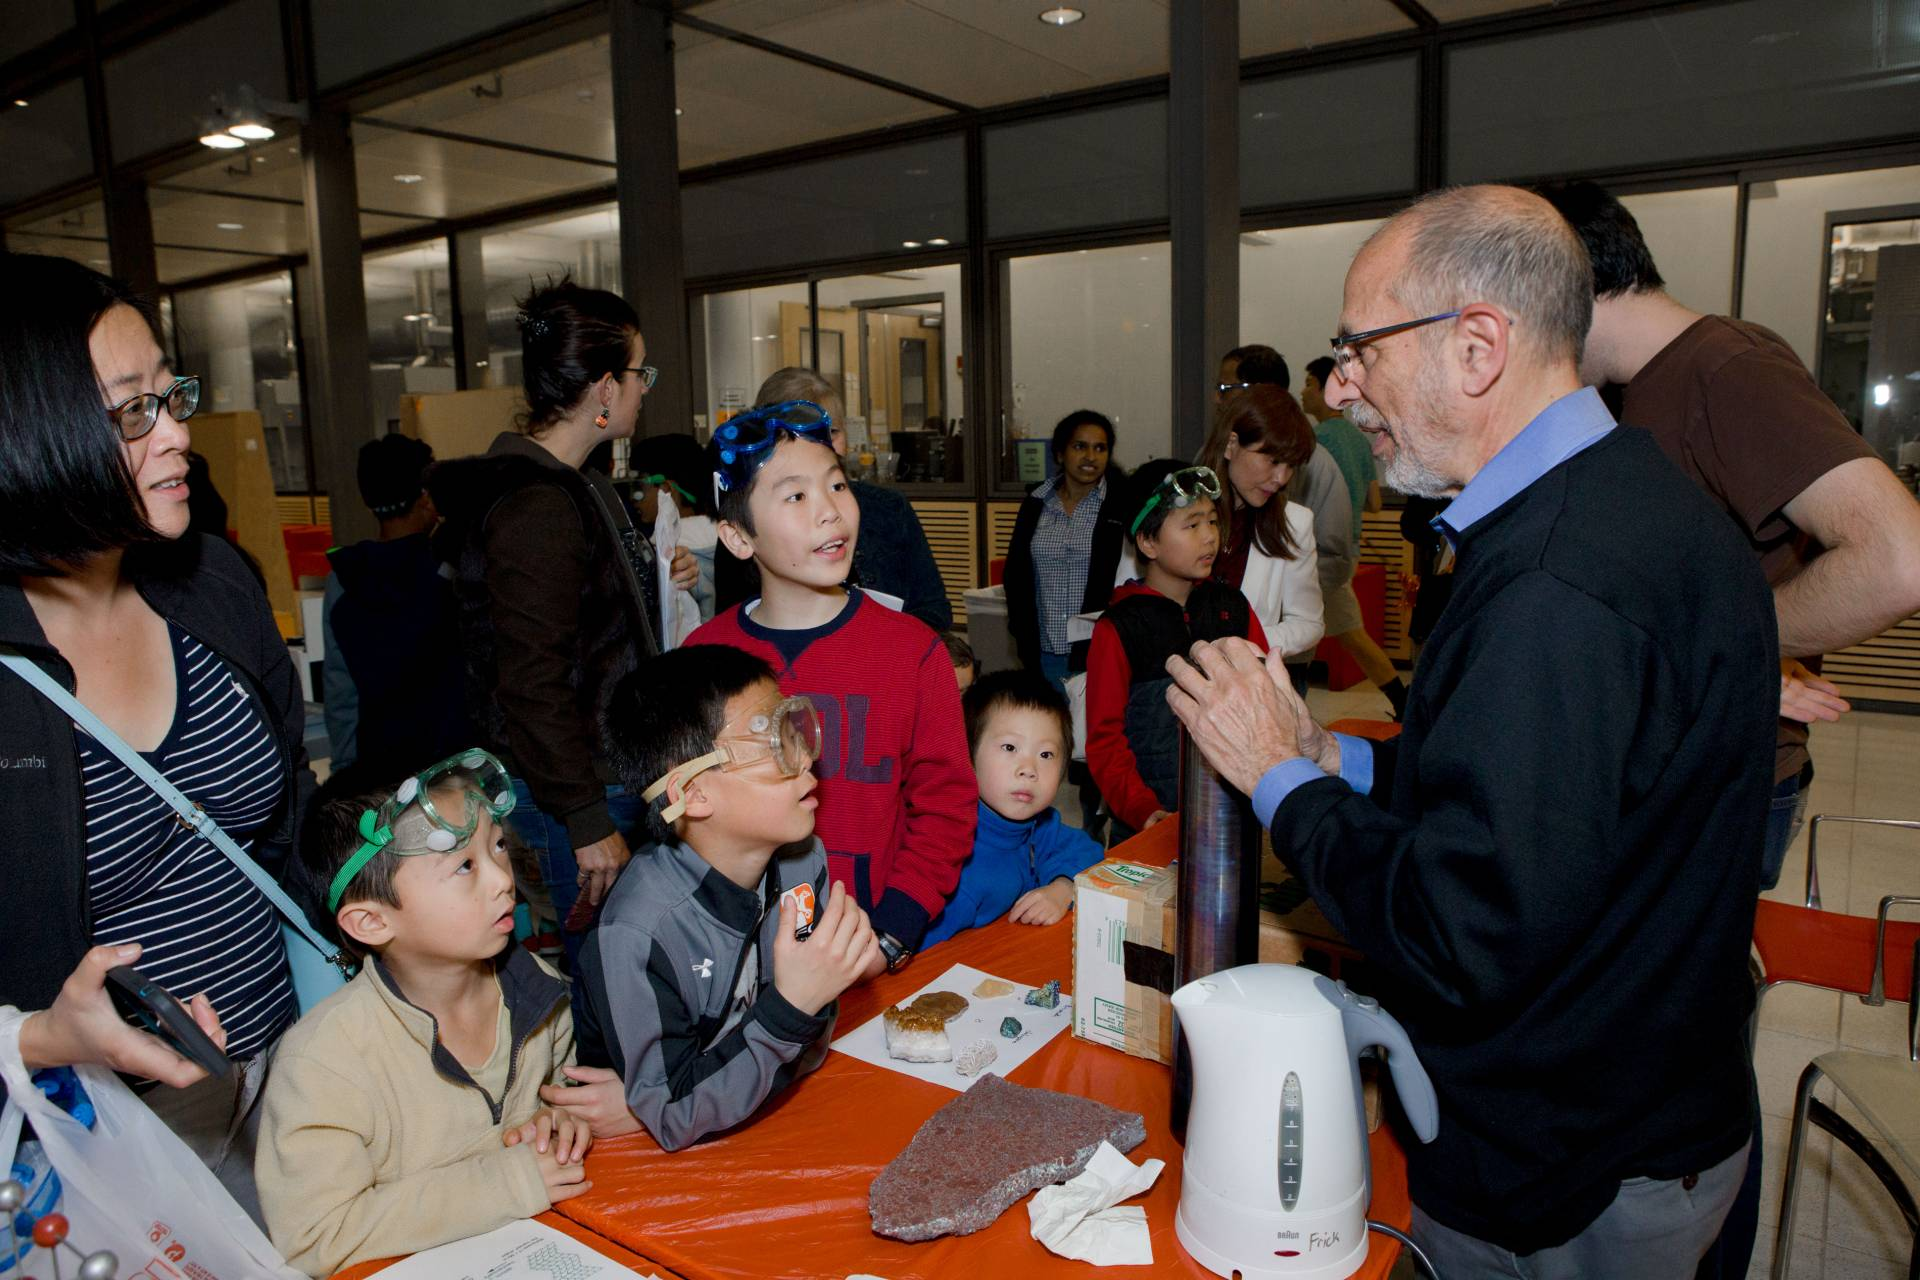 Professor Robert Cava talking to children at Chemistry Rocks event